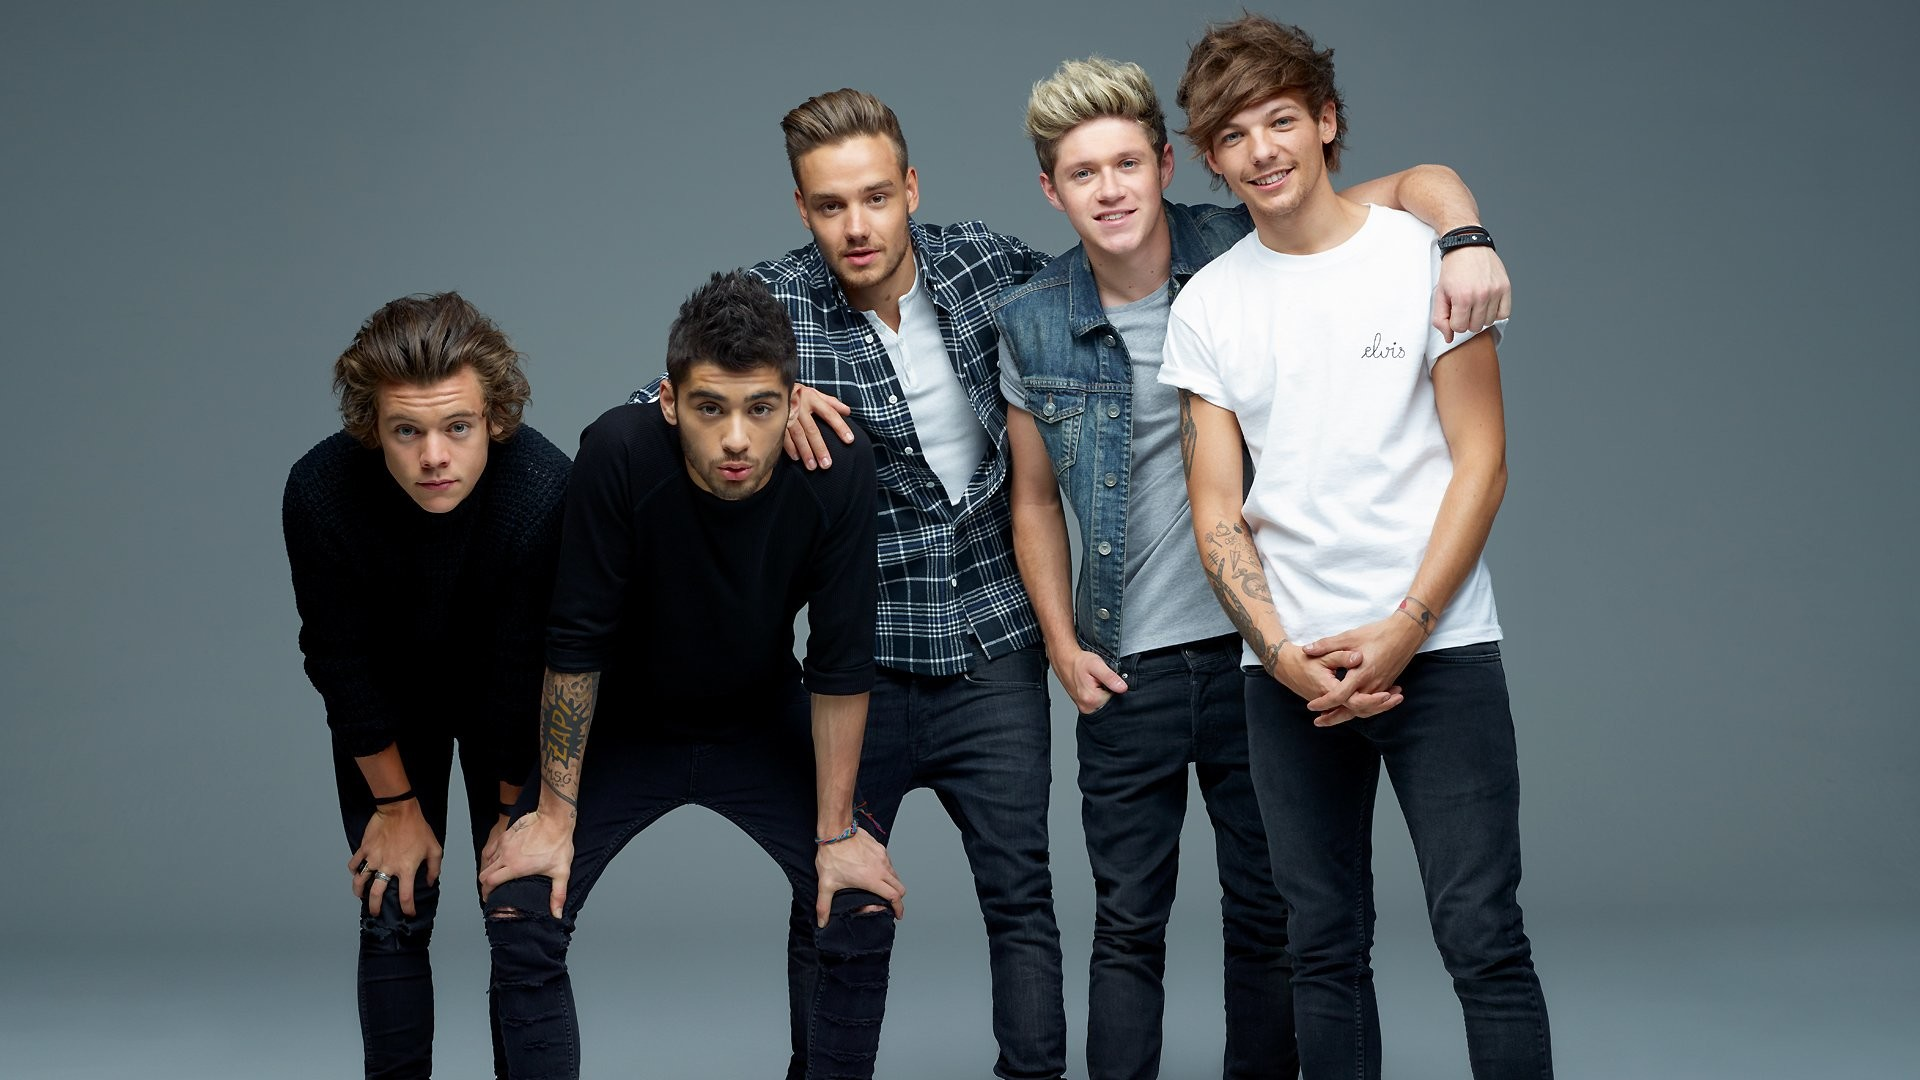 One Direction Wallpaper Hd 67 Images